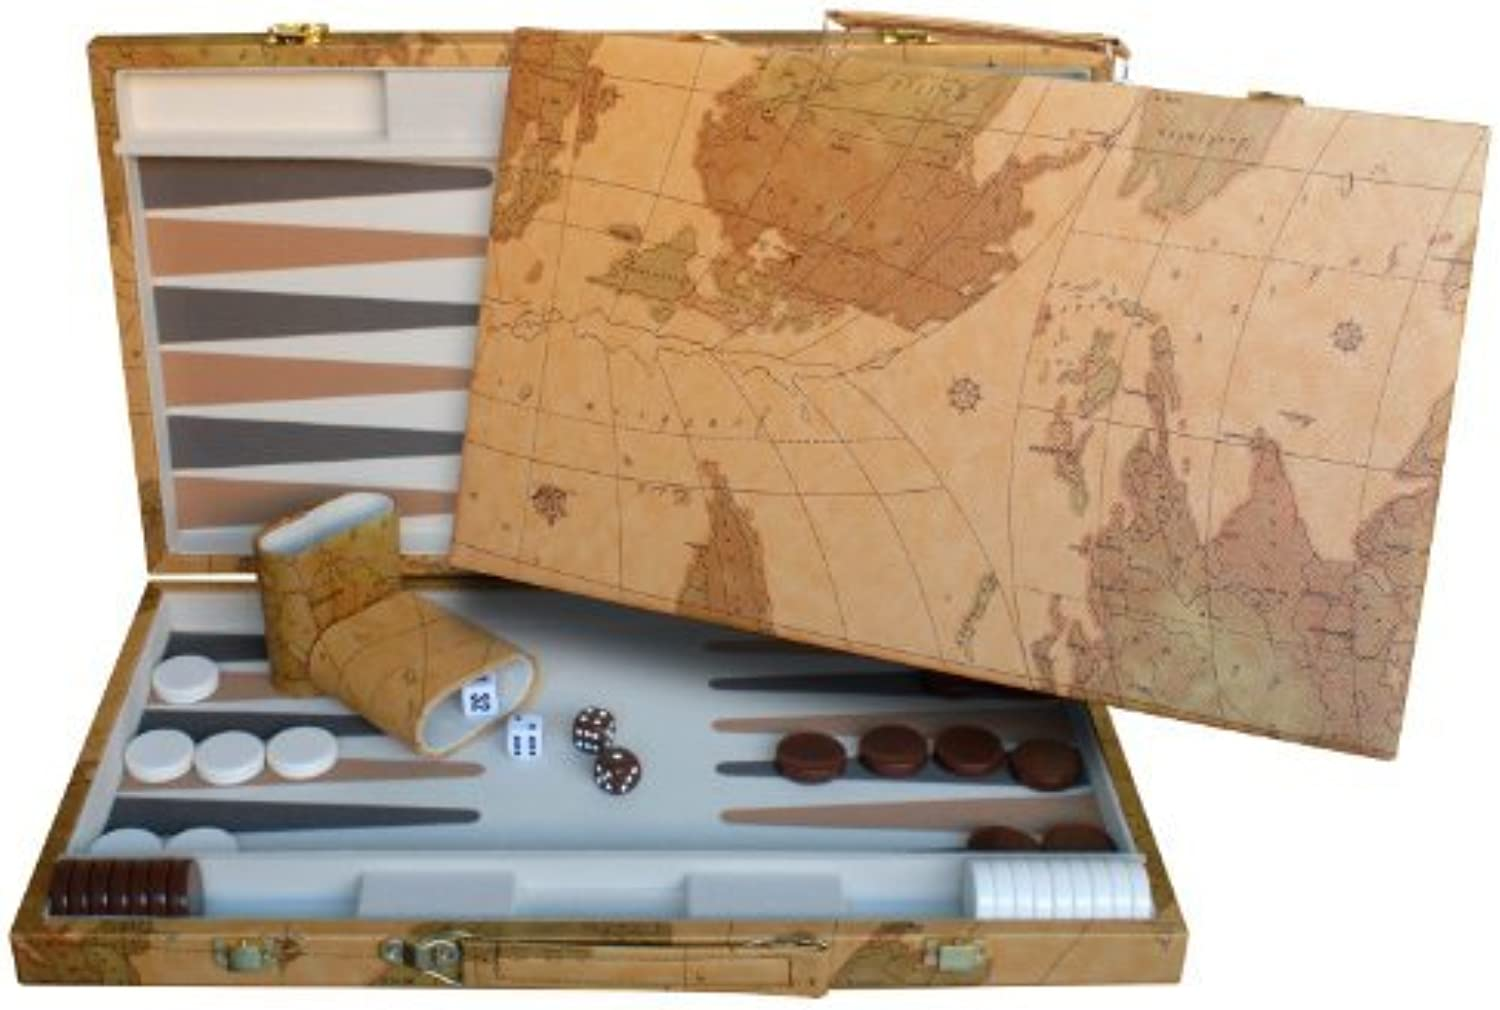 WE Games Map Design Backgammon Set - 18 Inch with Screen Printed Points by WE Games